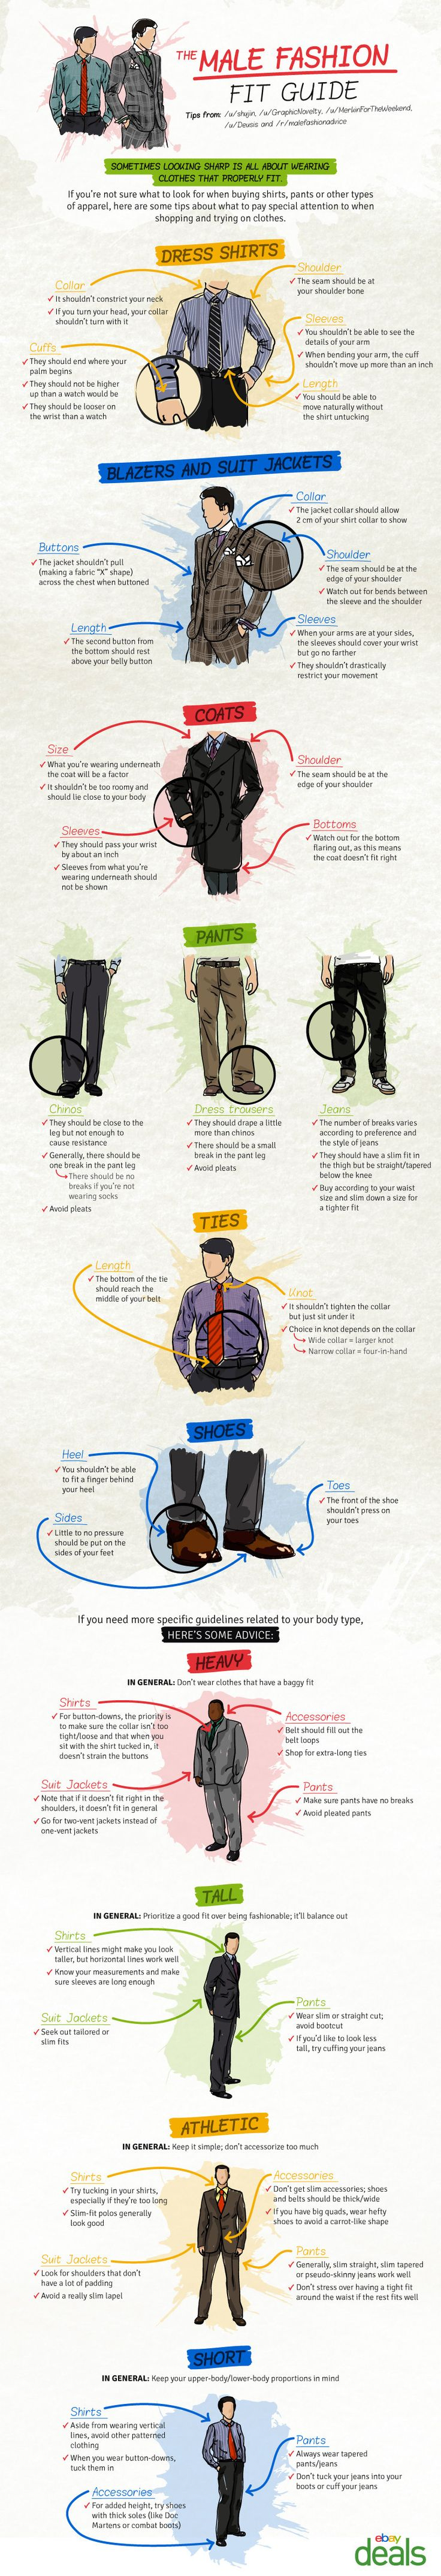 Community Post: Everything You Need To Know About Men's Fashion In One Infographic